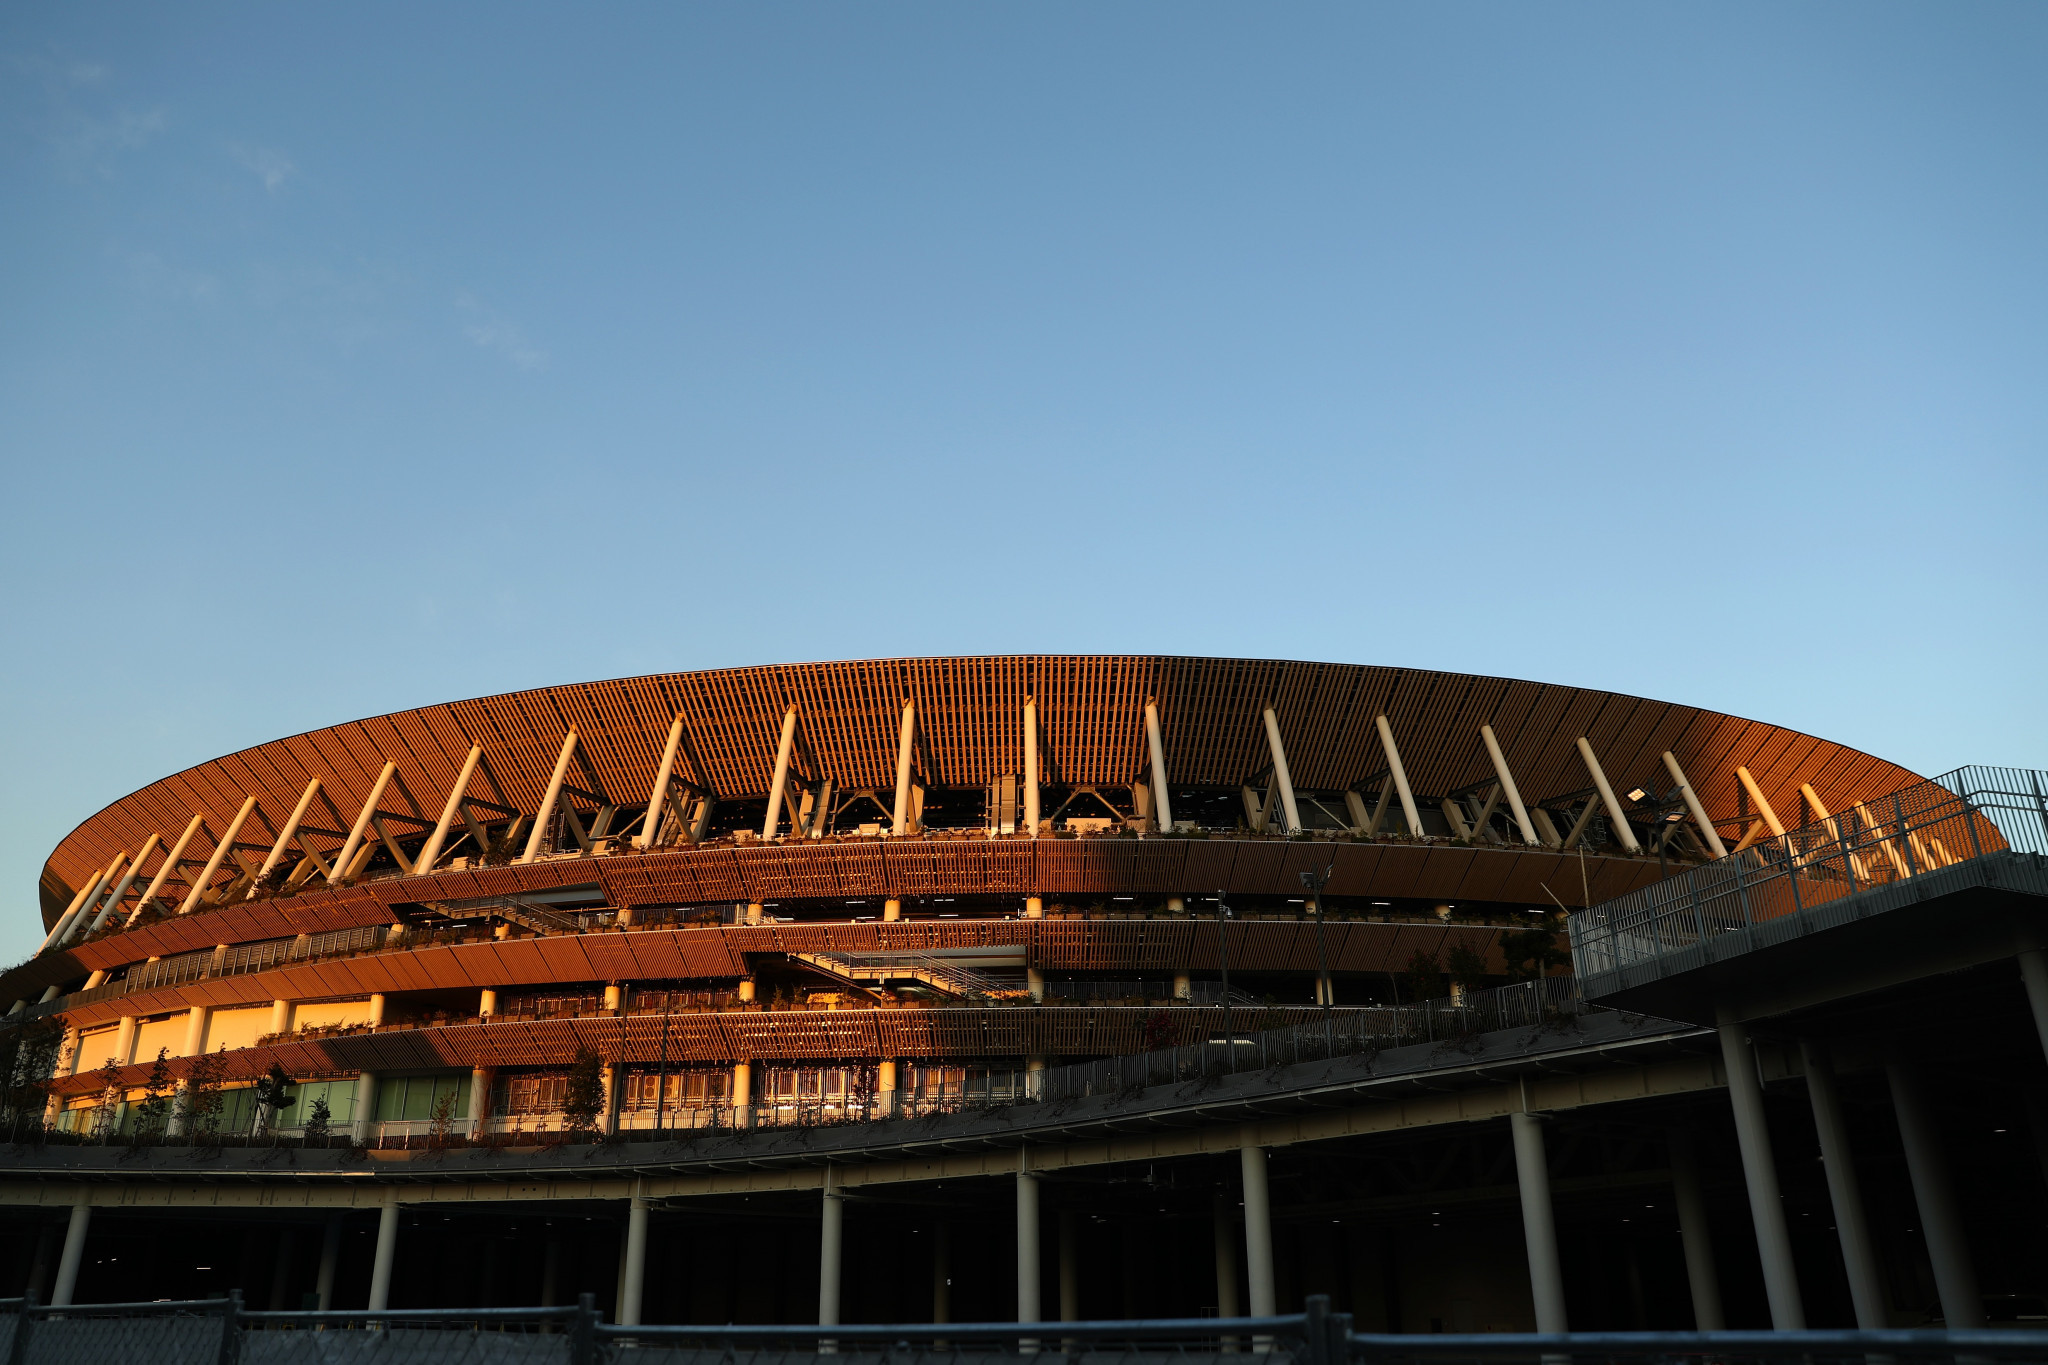 There will be 8K coverage provided from the Tokyo 2020 Opening and Closing Ceremonies, due to take place at Japan's New National Stadium ©Getty Images